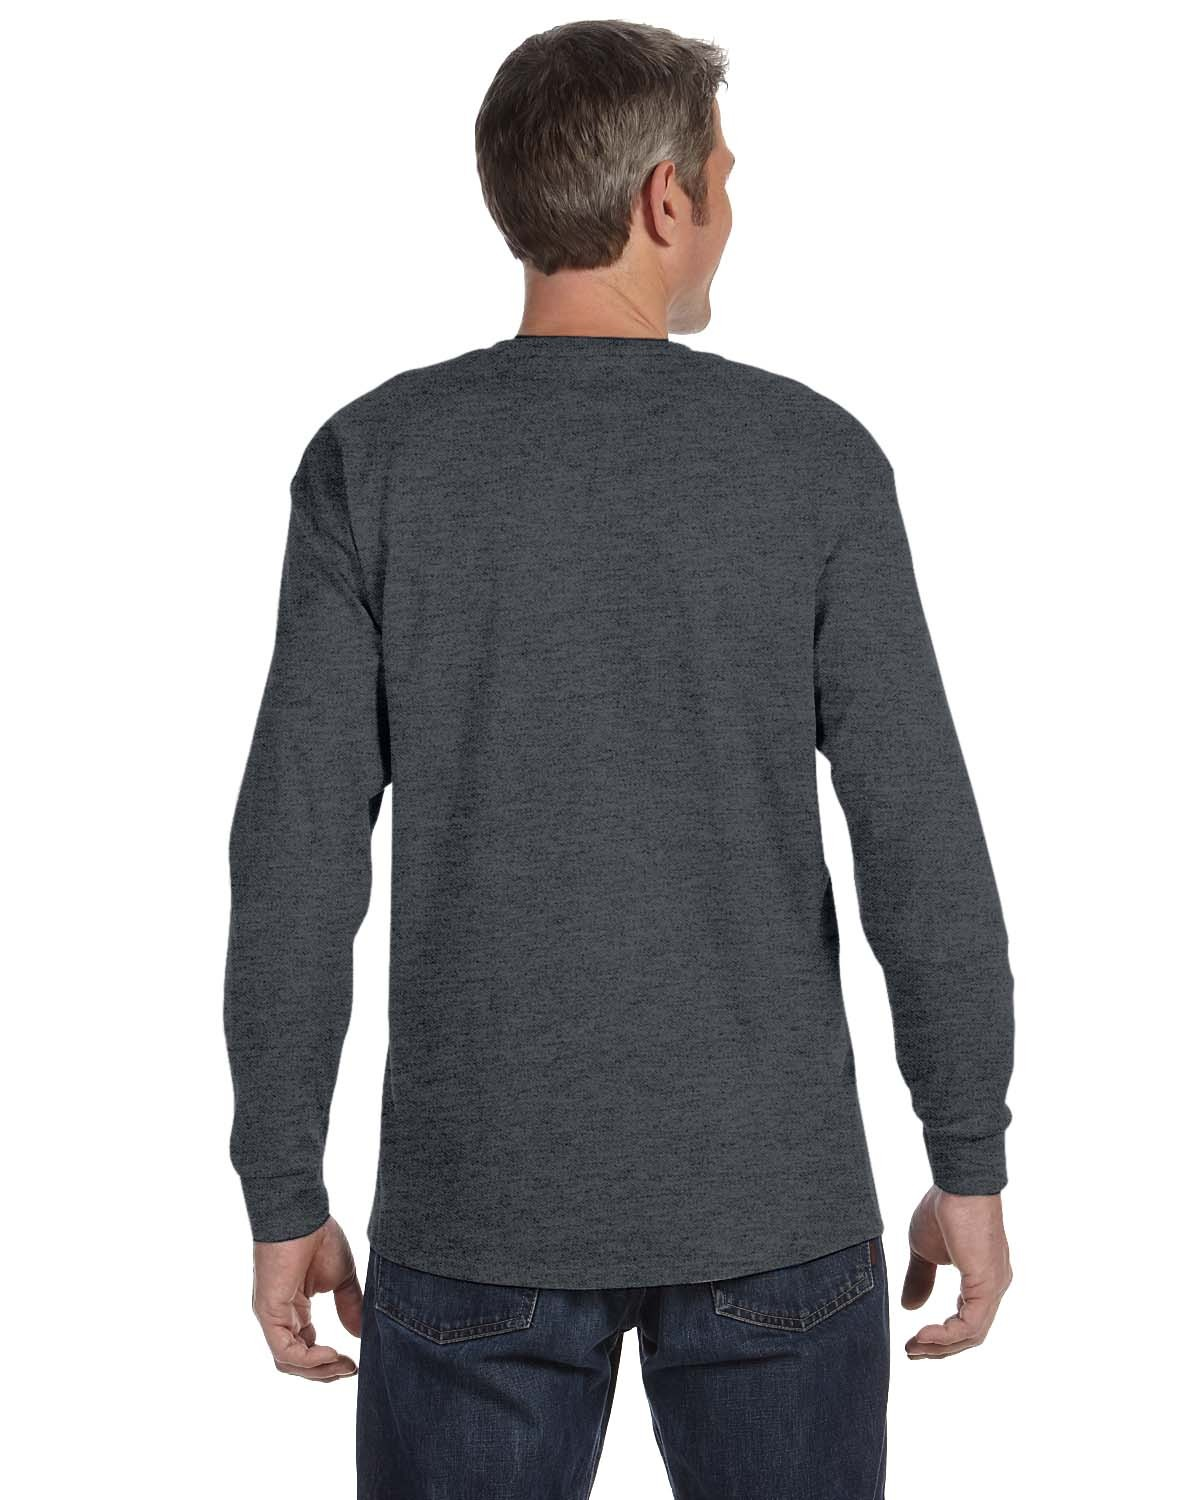 5586 Hanes CHARCOAL HEATHER